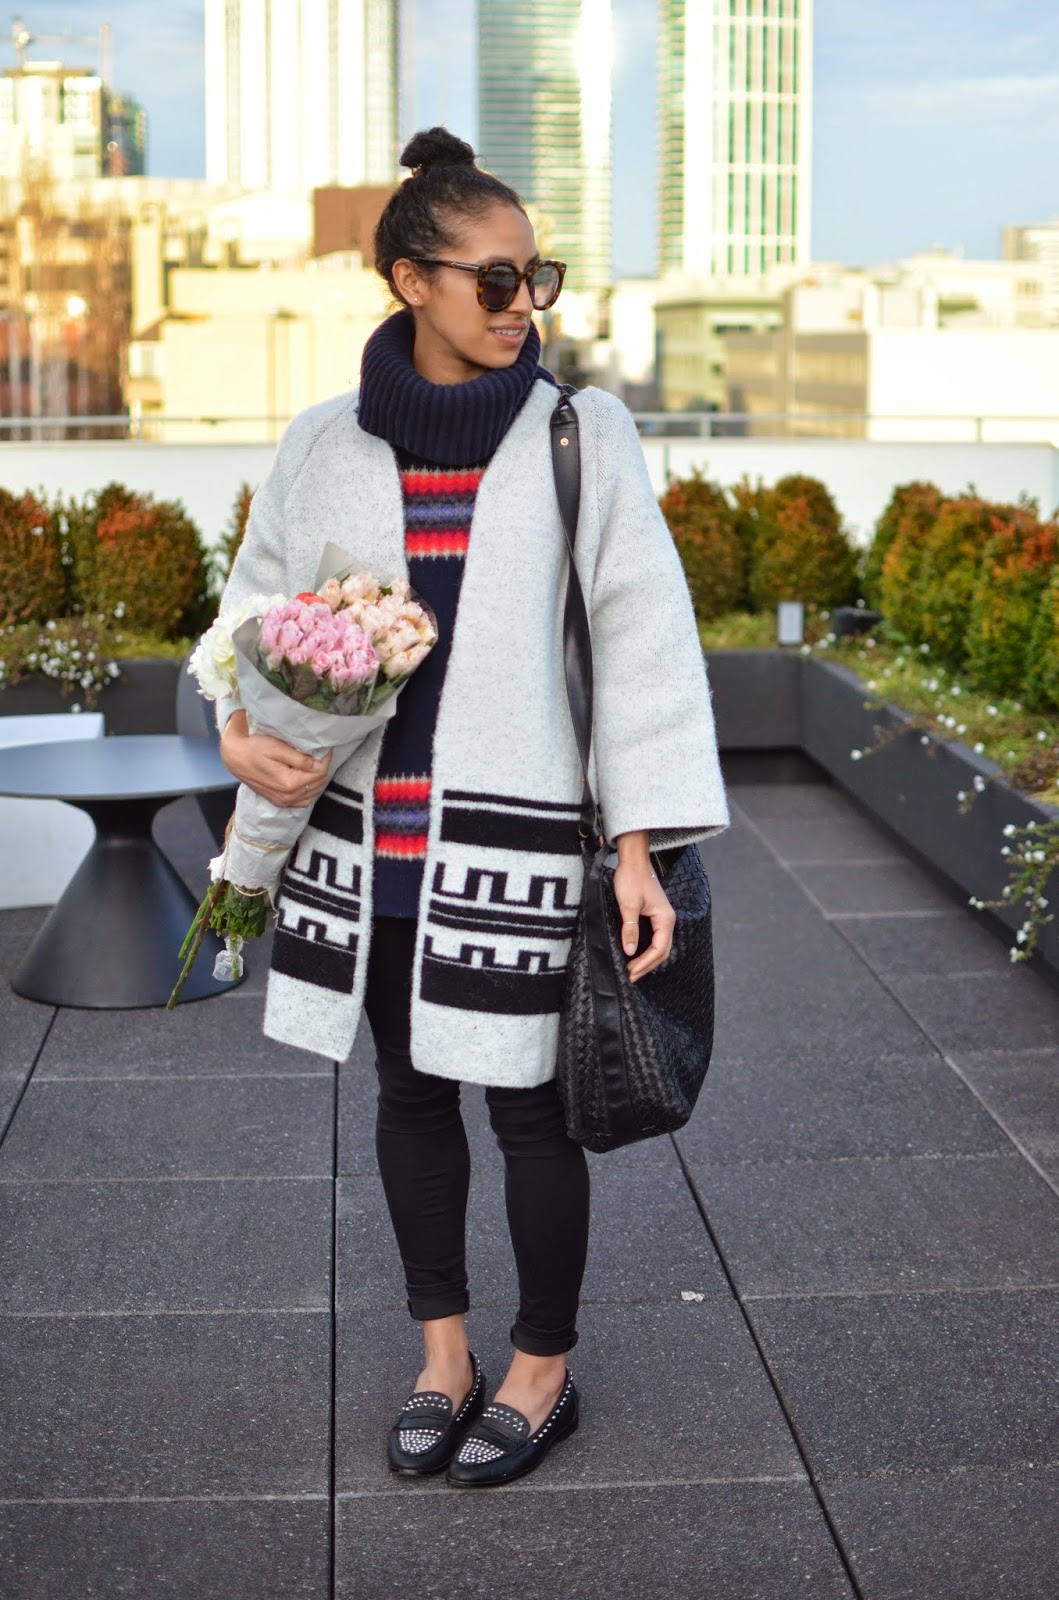 zara, white coat, how to wear contrasting prints, pink roses, bottega vendetta, leather handbag, Karen Walker Super sunglasses